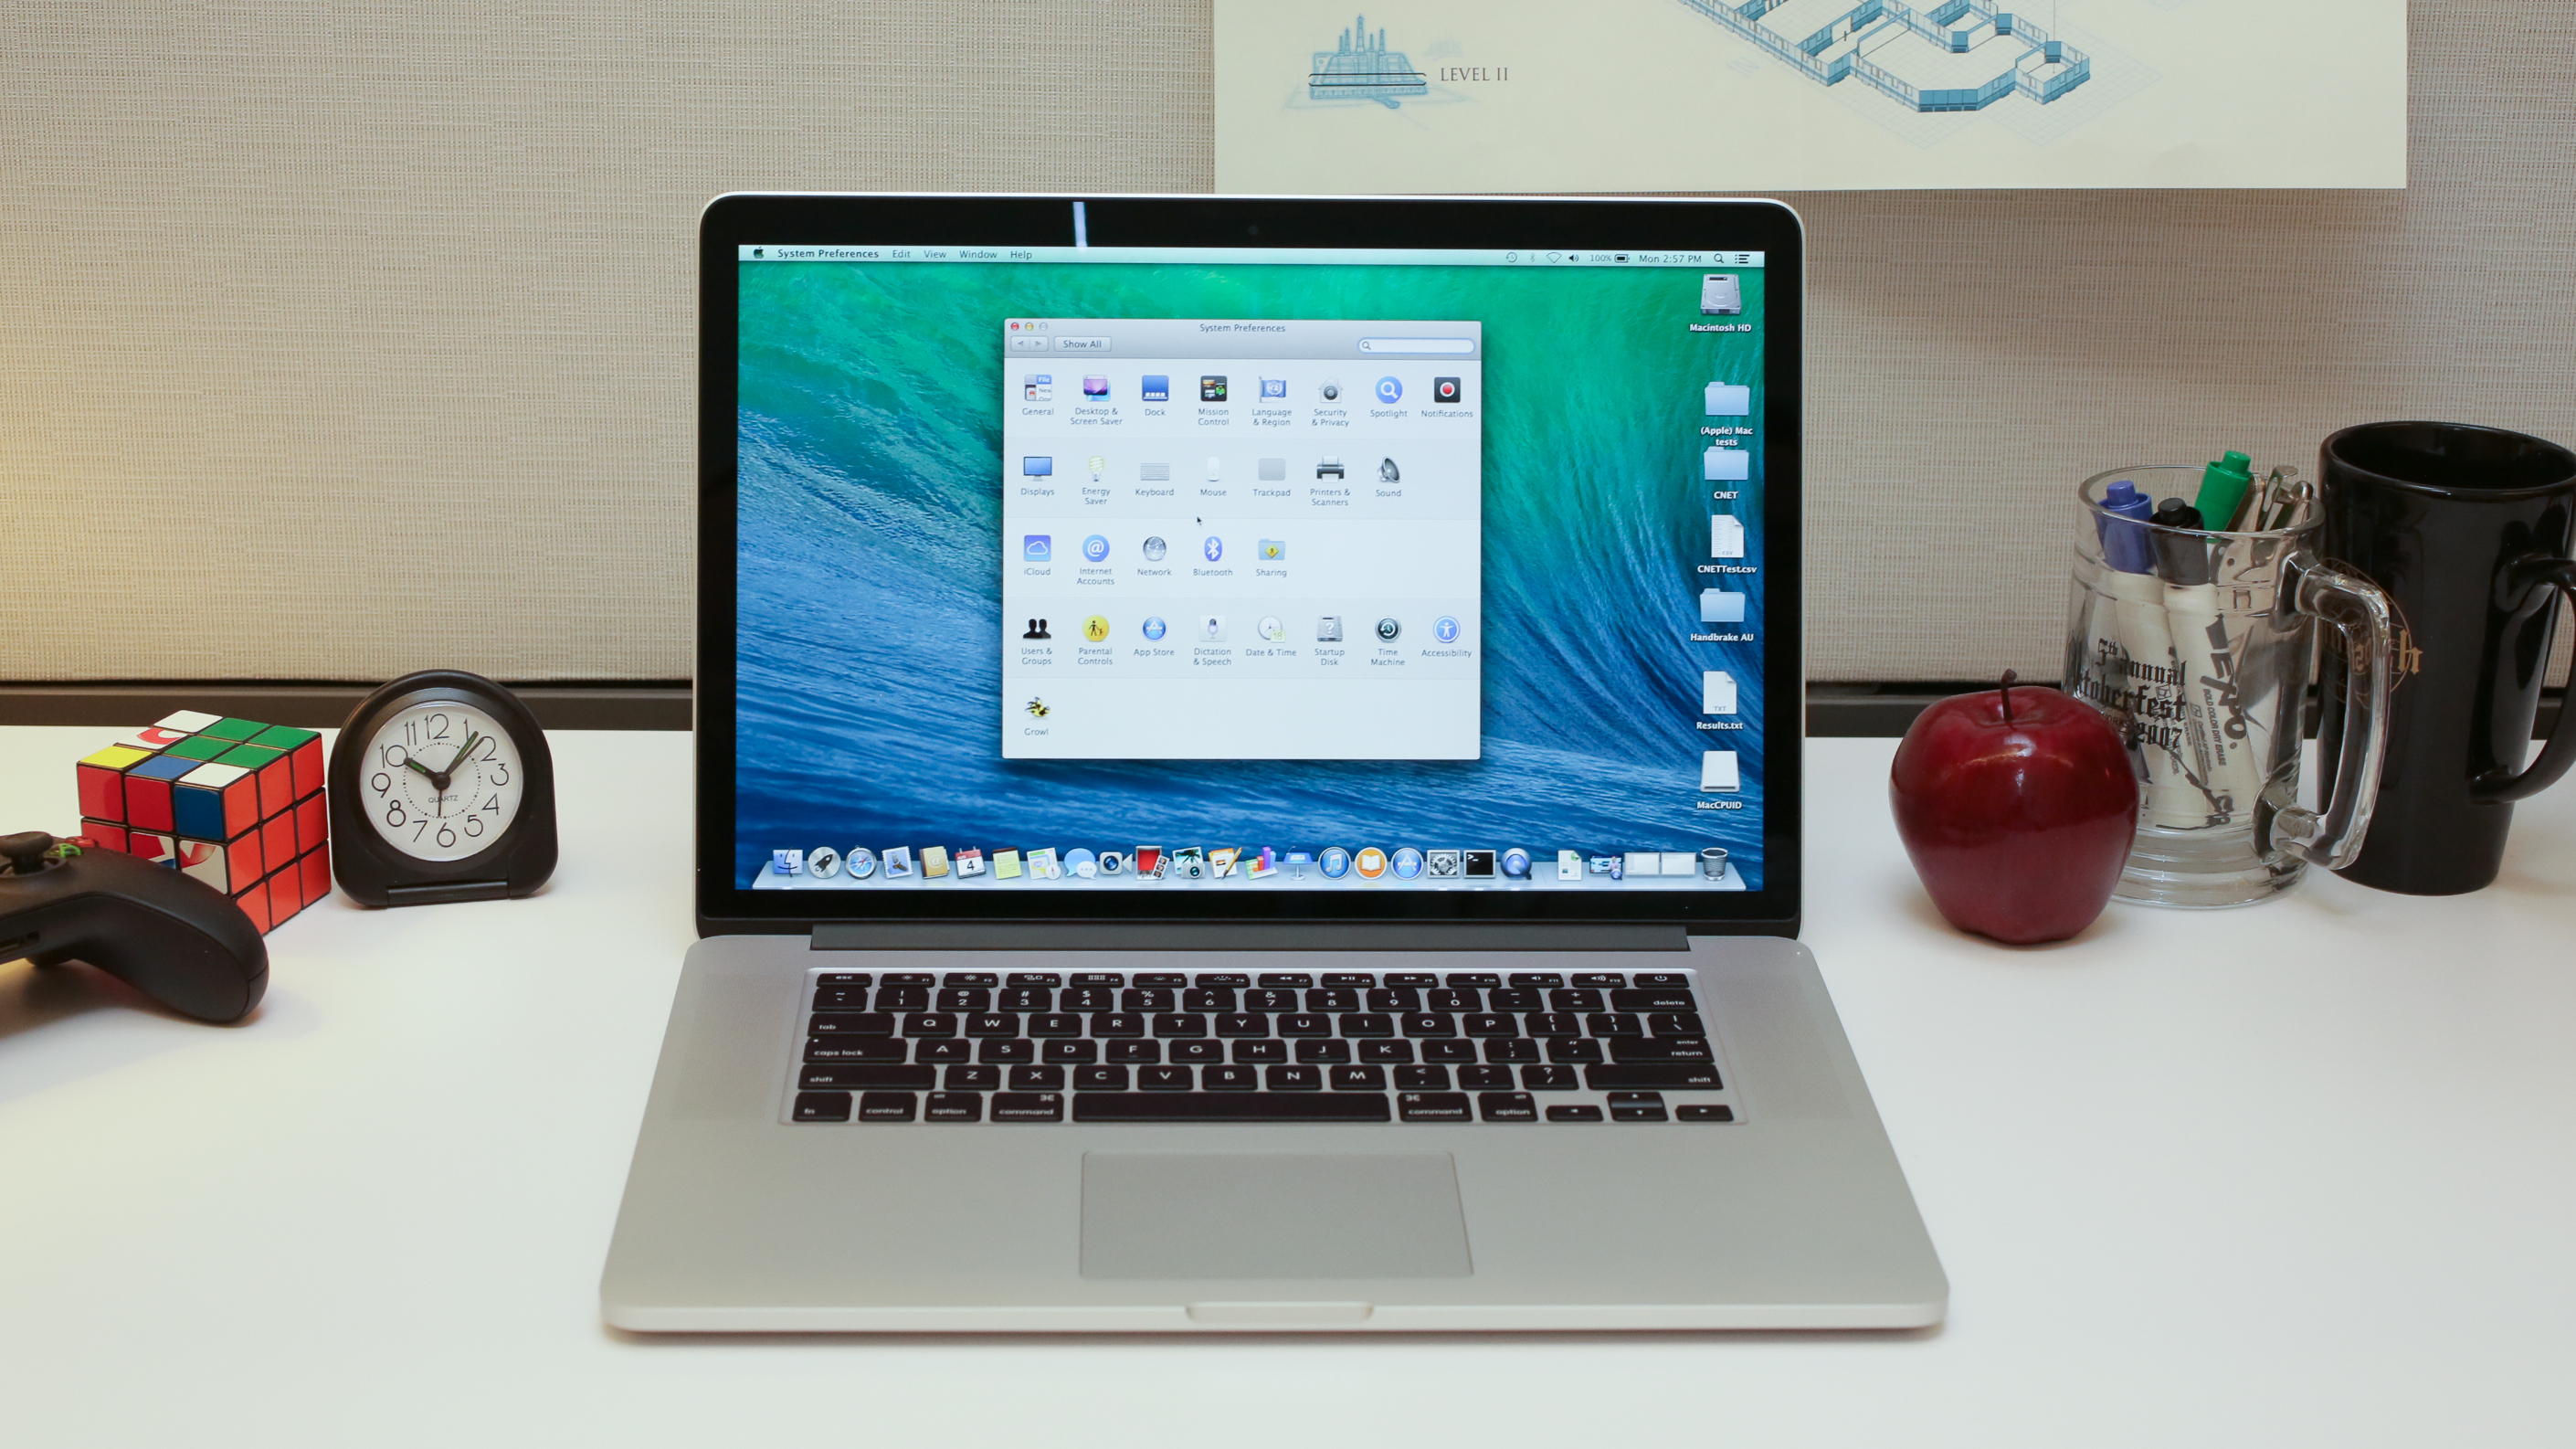 apple-macbook-pro-with-retina-display-15-inch-july-2014-product-photos10.jpg